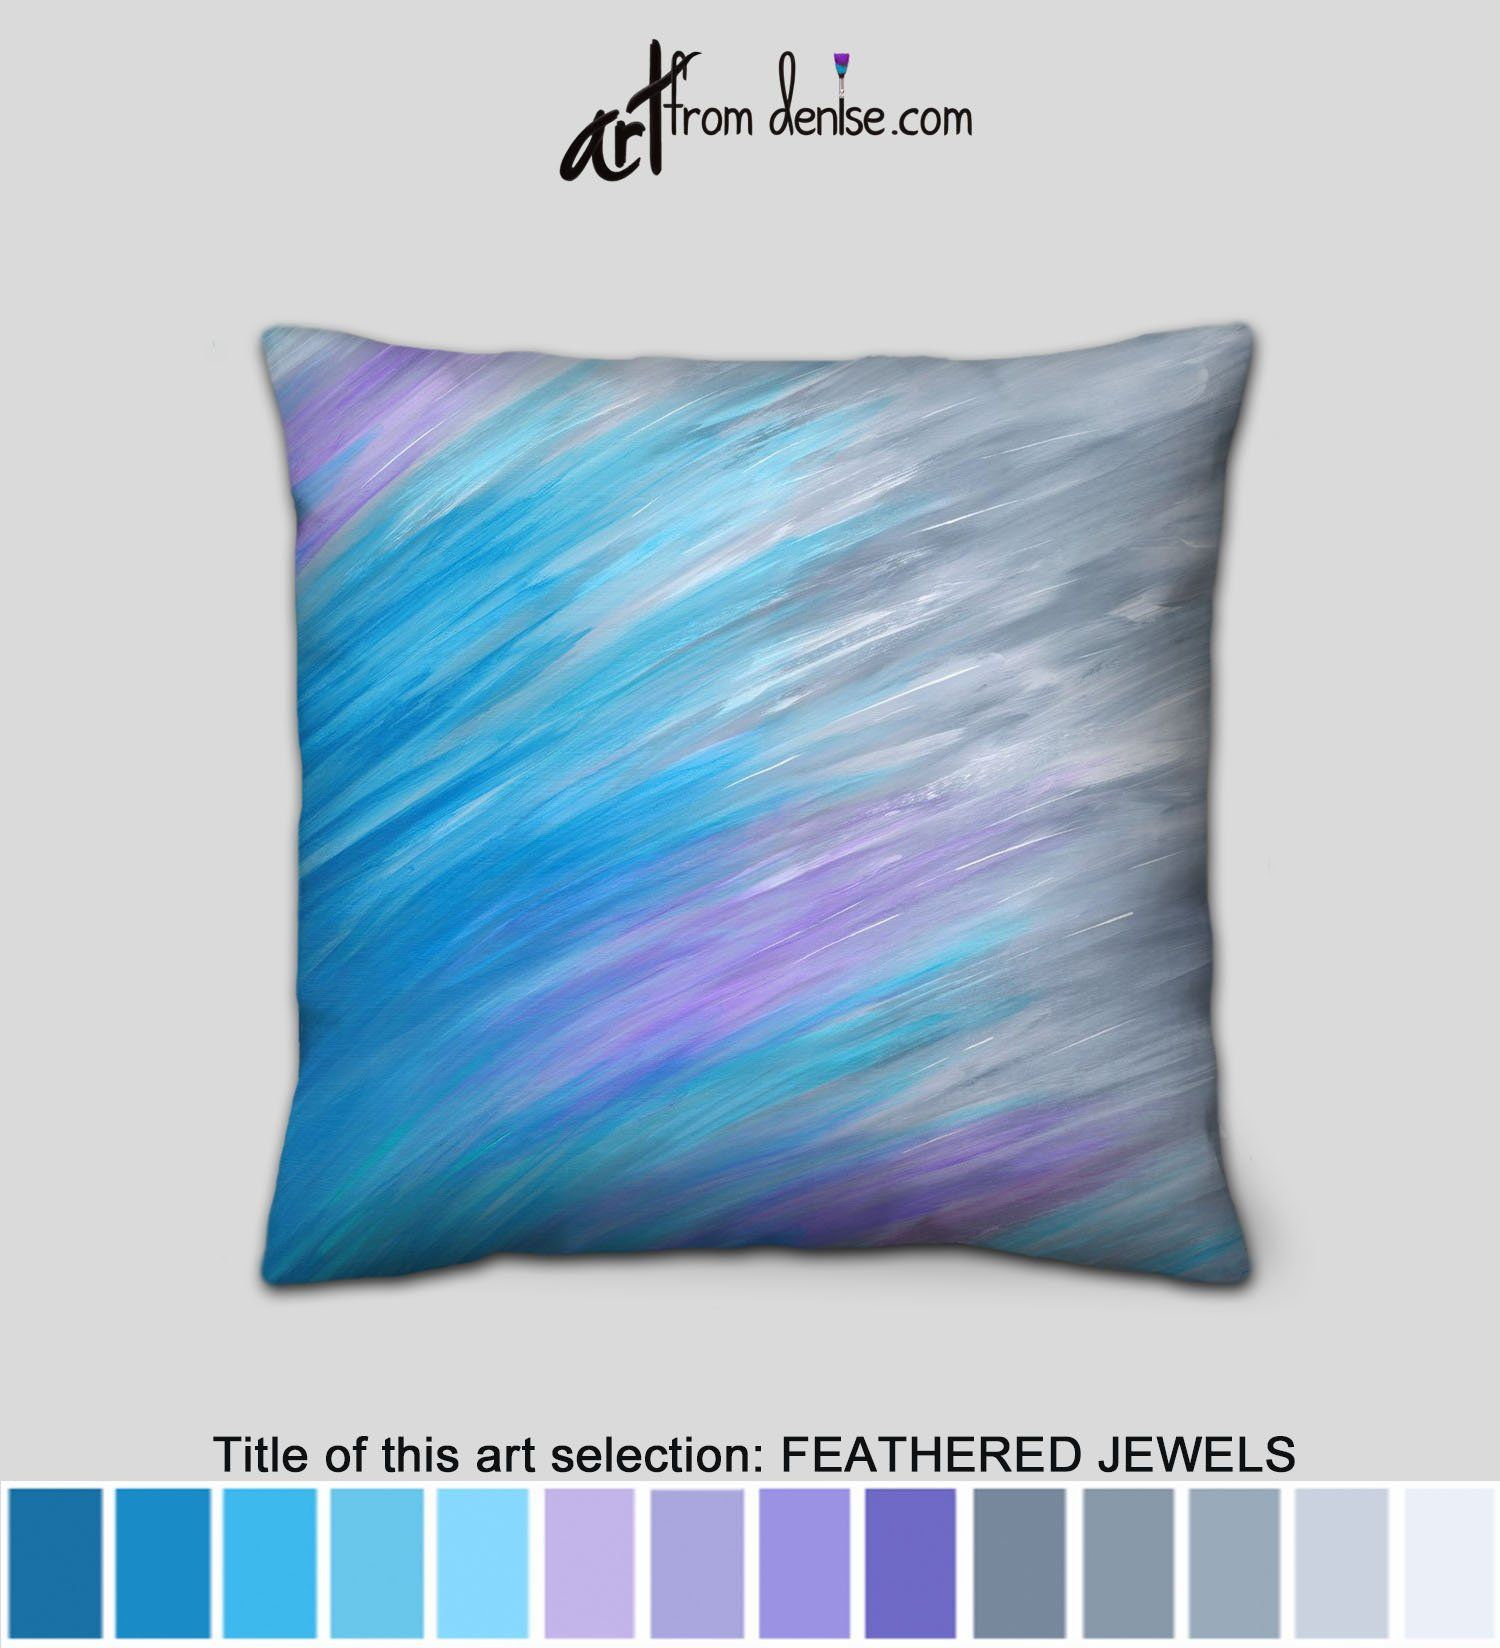 Lavender Gray Turquoise Blue Throw Pillows For Bed Decor Etsy In 2020 Blue Throw Pillows Blue Toss Pillows Throw Pillows Bed